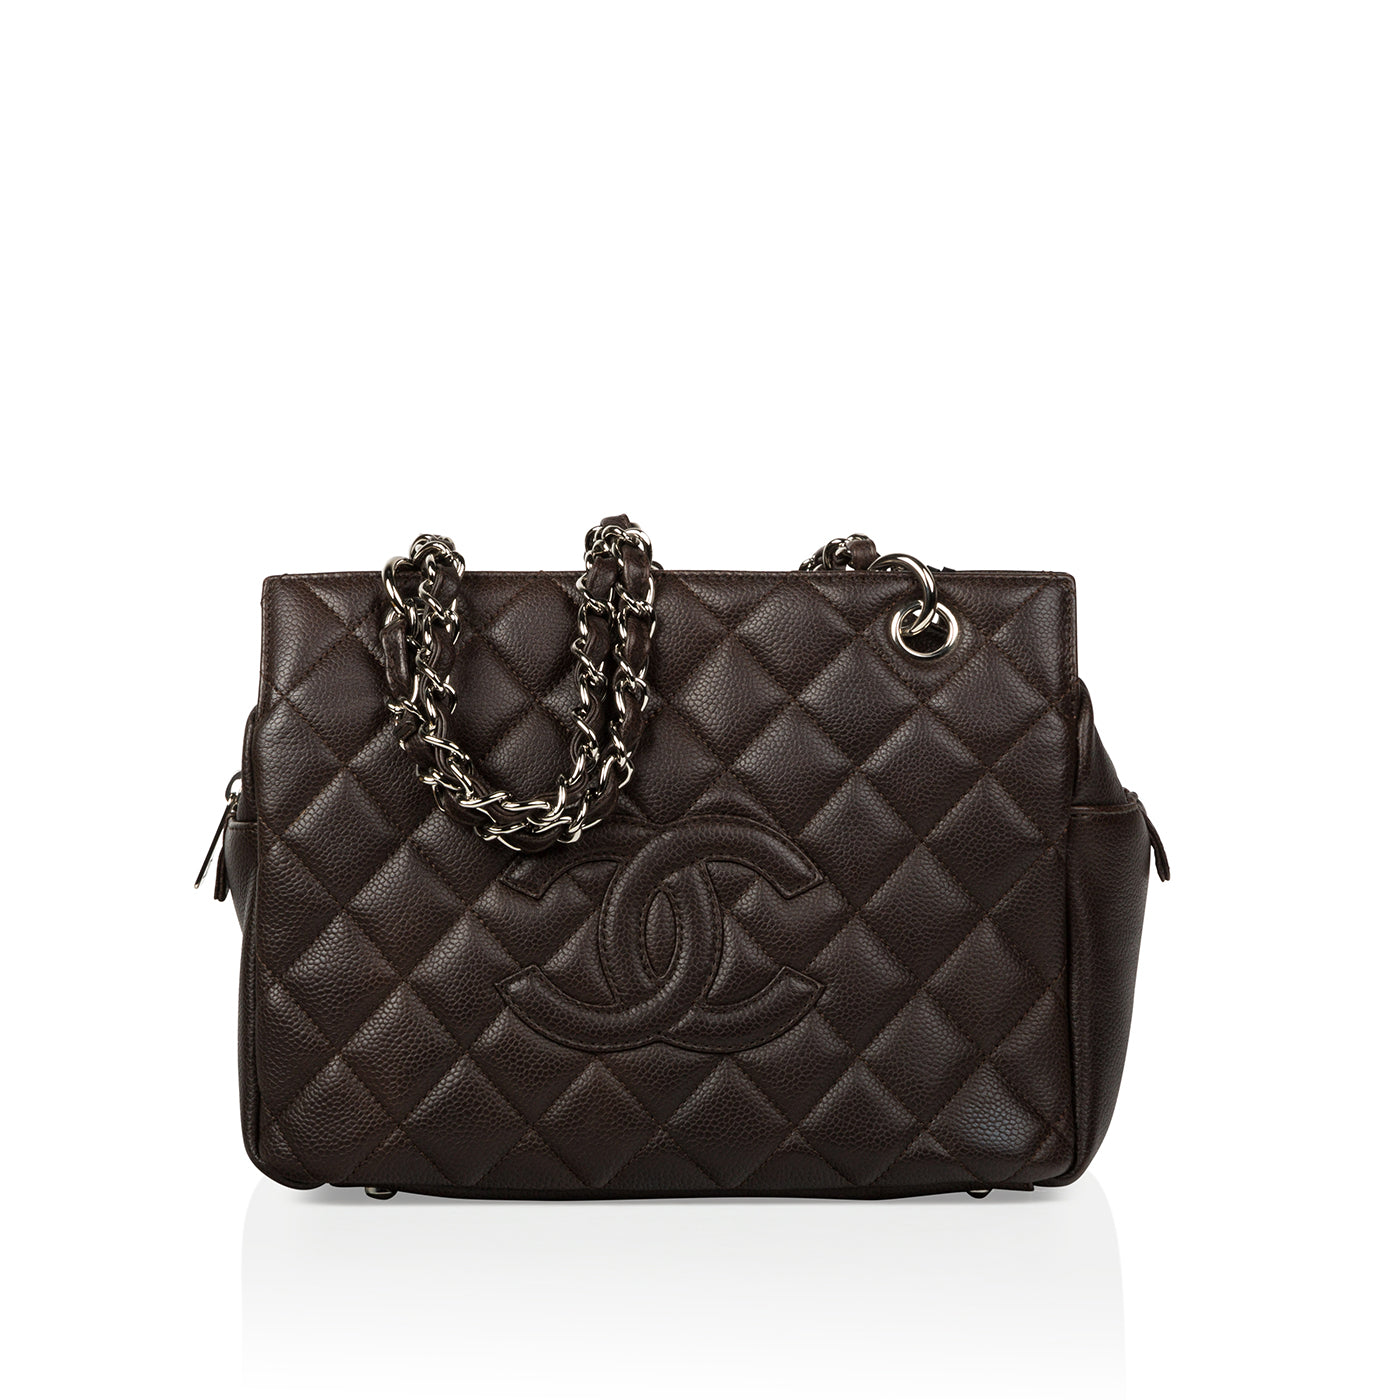 a804c0f00adf Chanel - Petite Timeless Tote - PTT - Caviar Leather - Pre-Loved ...